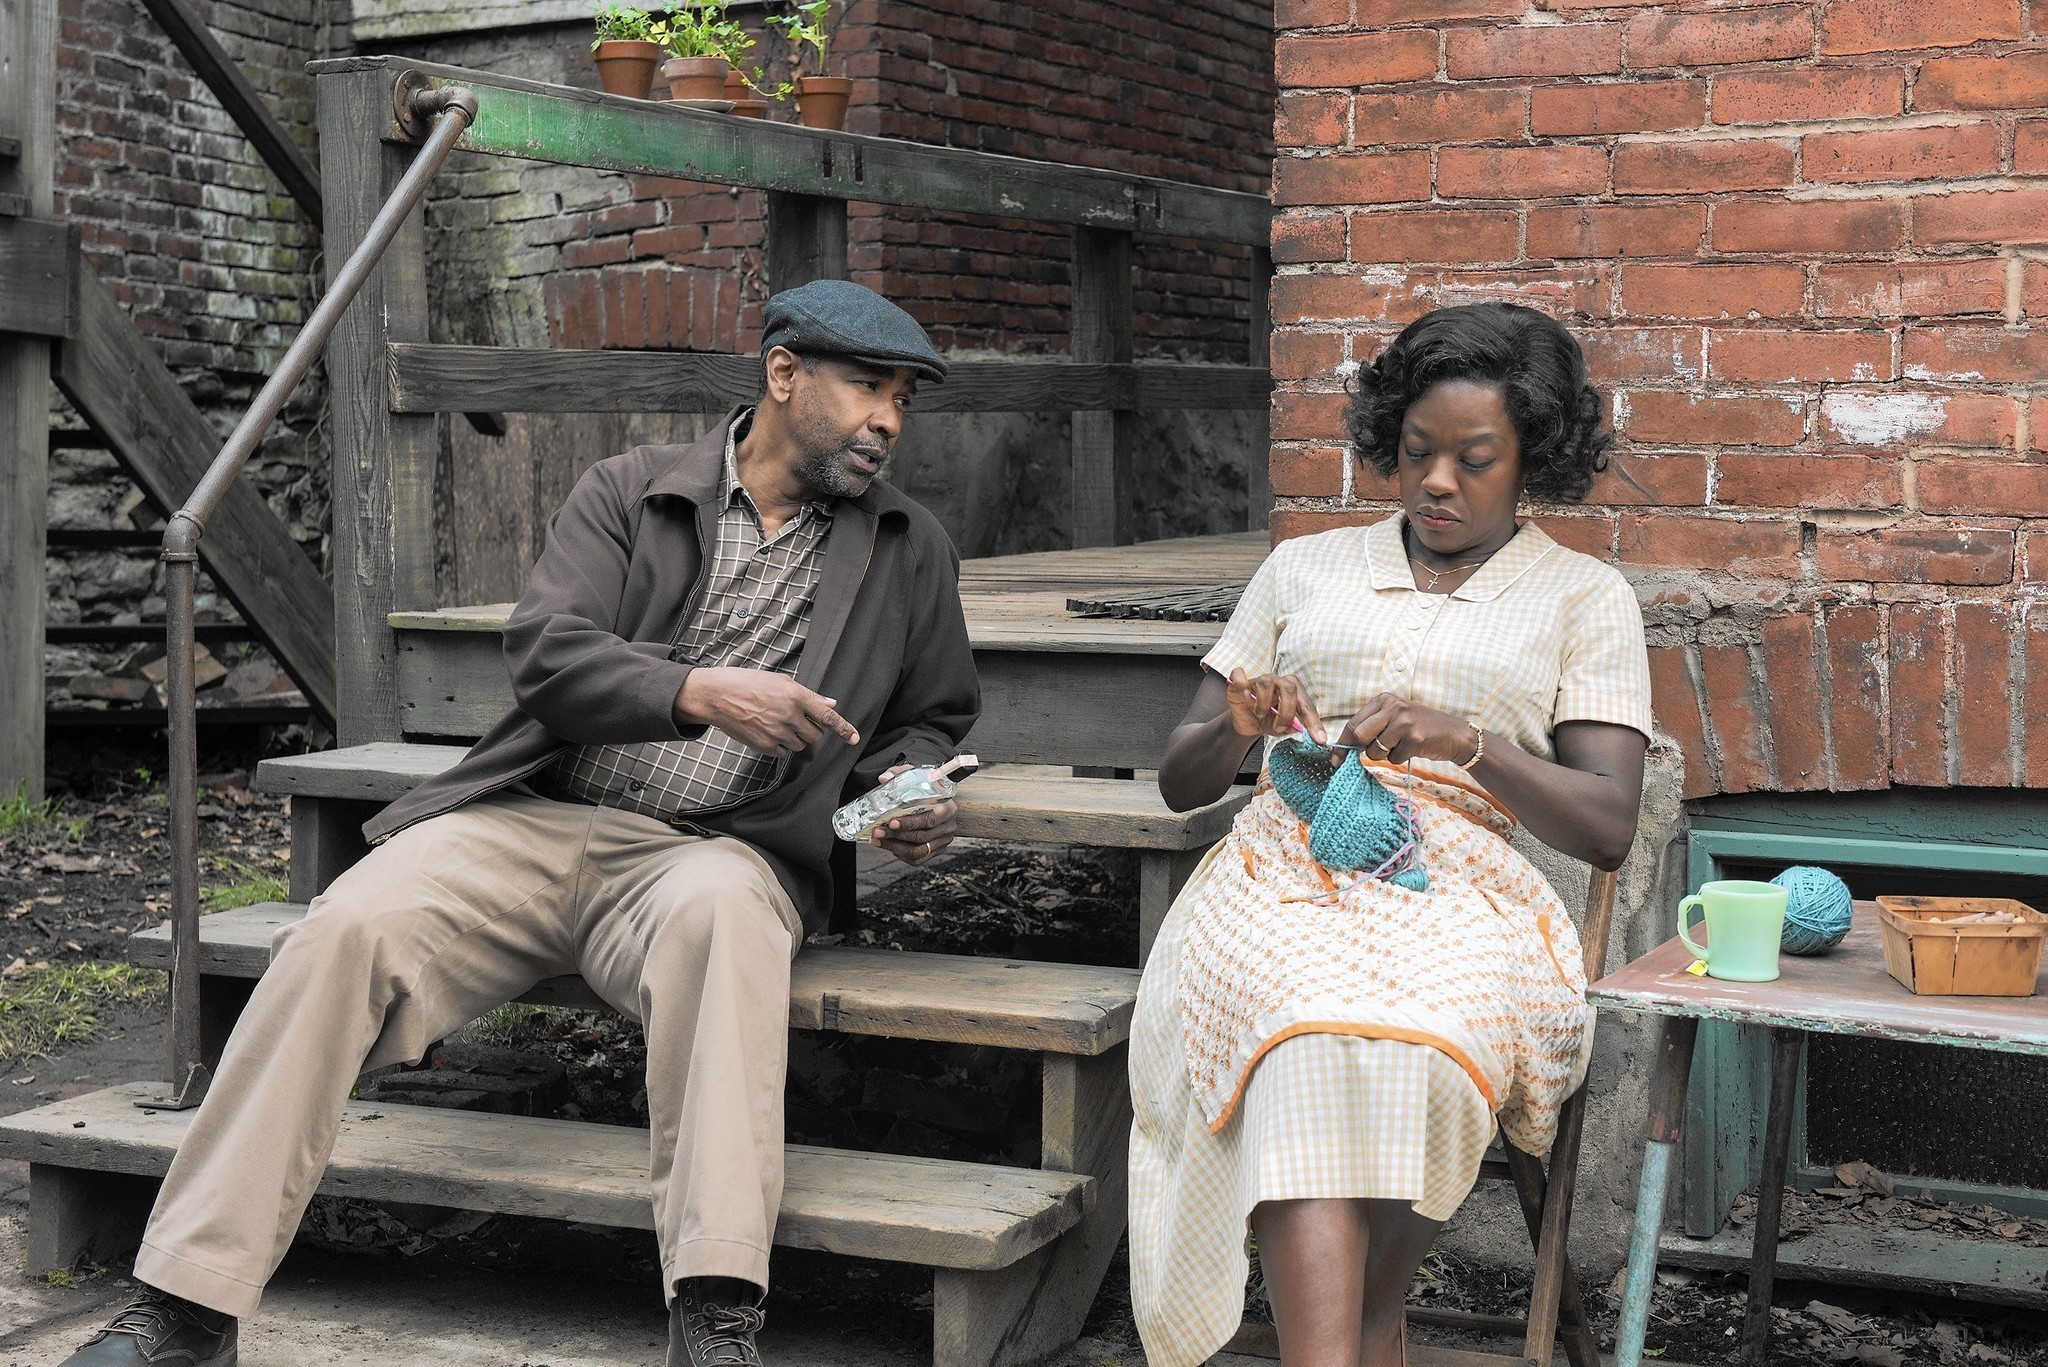 how fences built moonlight winner of the oscar for best how fences built moonlight winner of the oscar for best picture chicago tribune